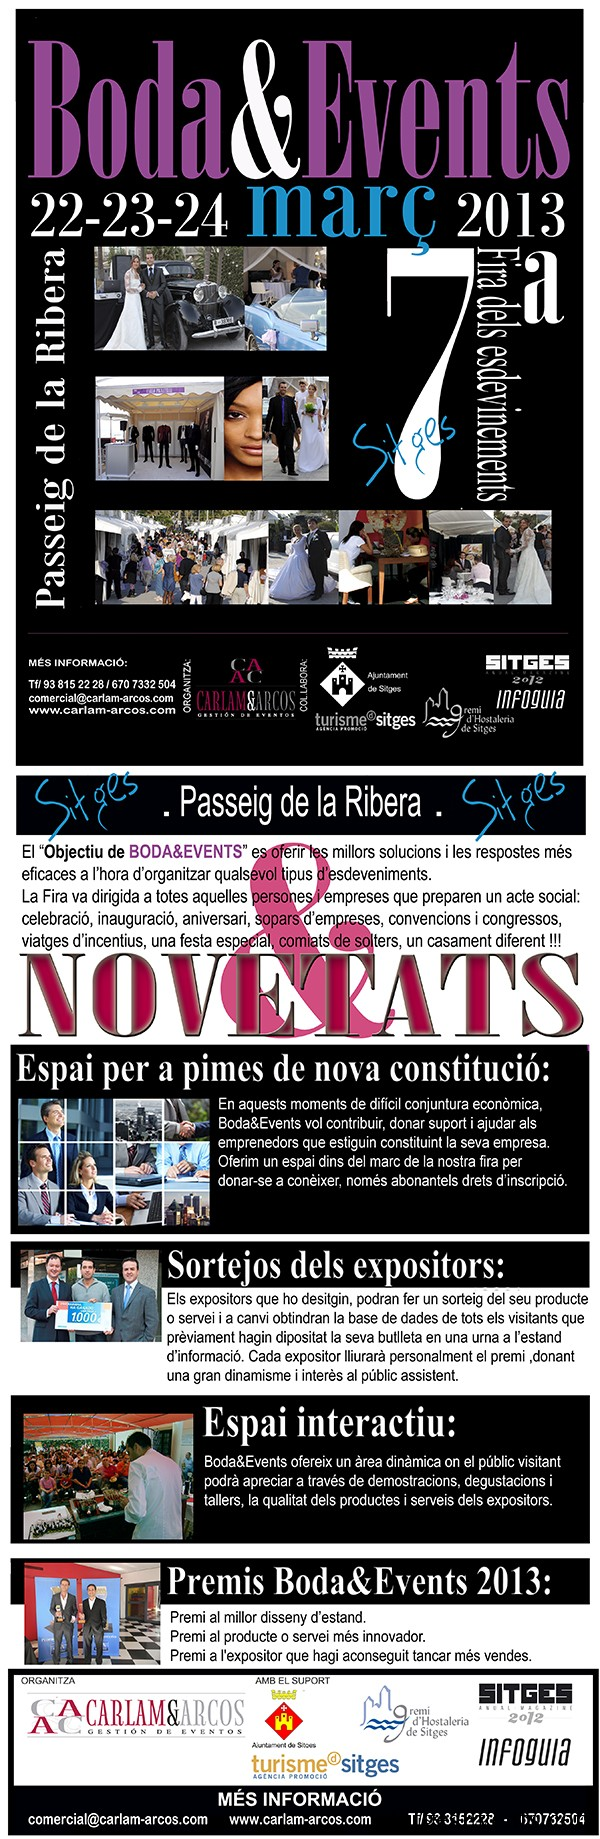 Bodaevents wedding event sitges